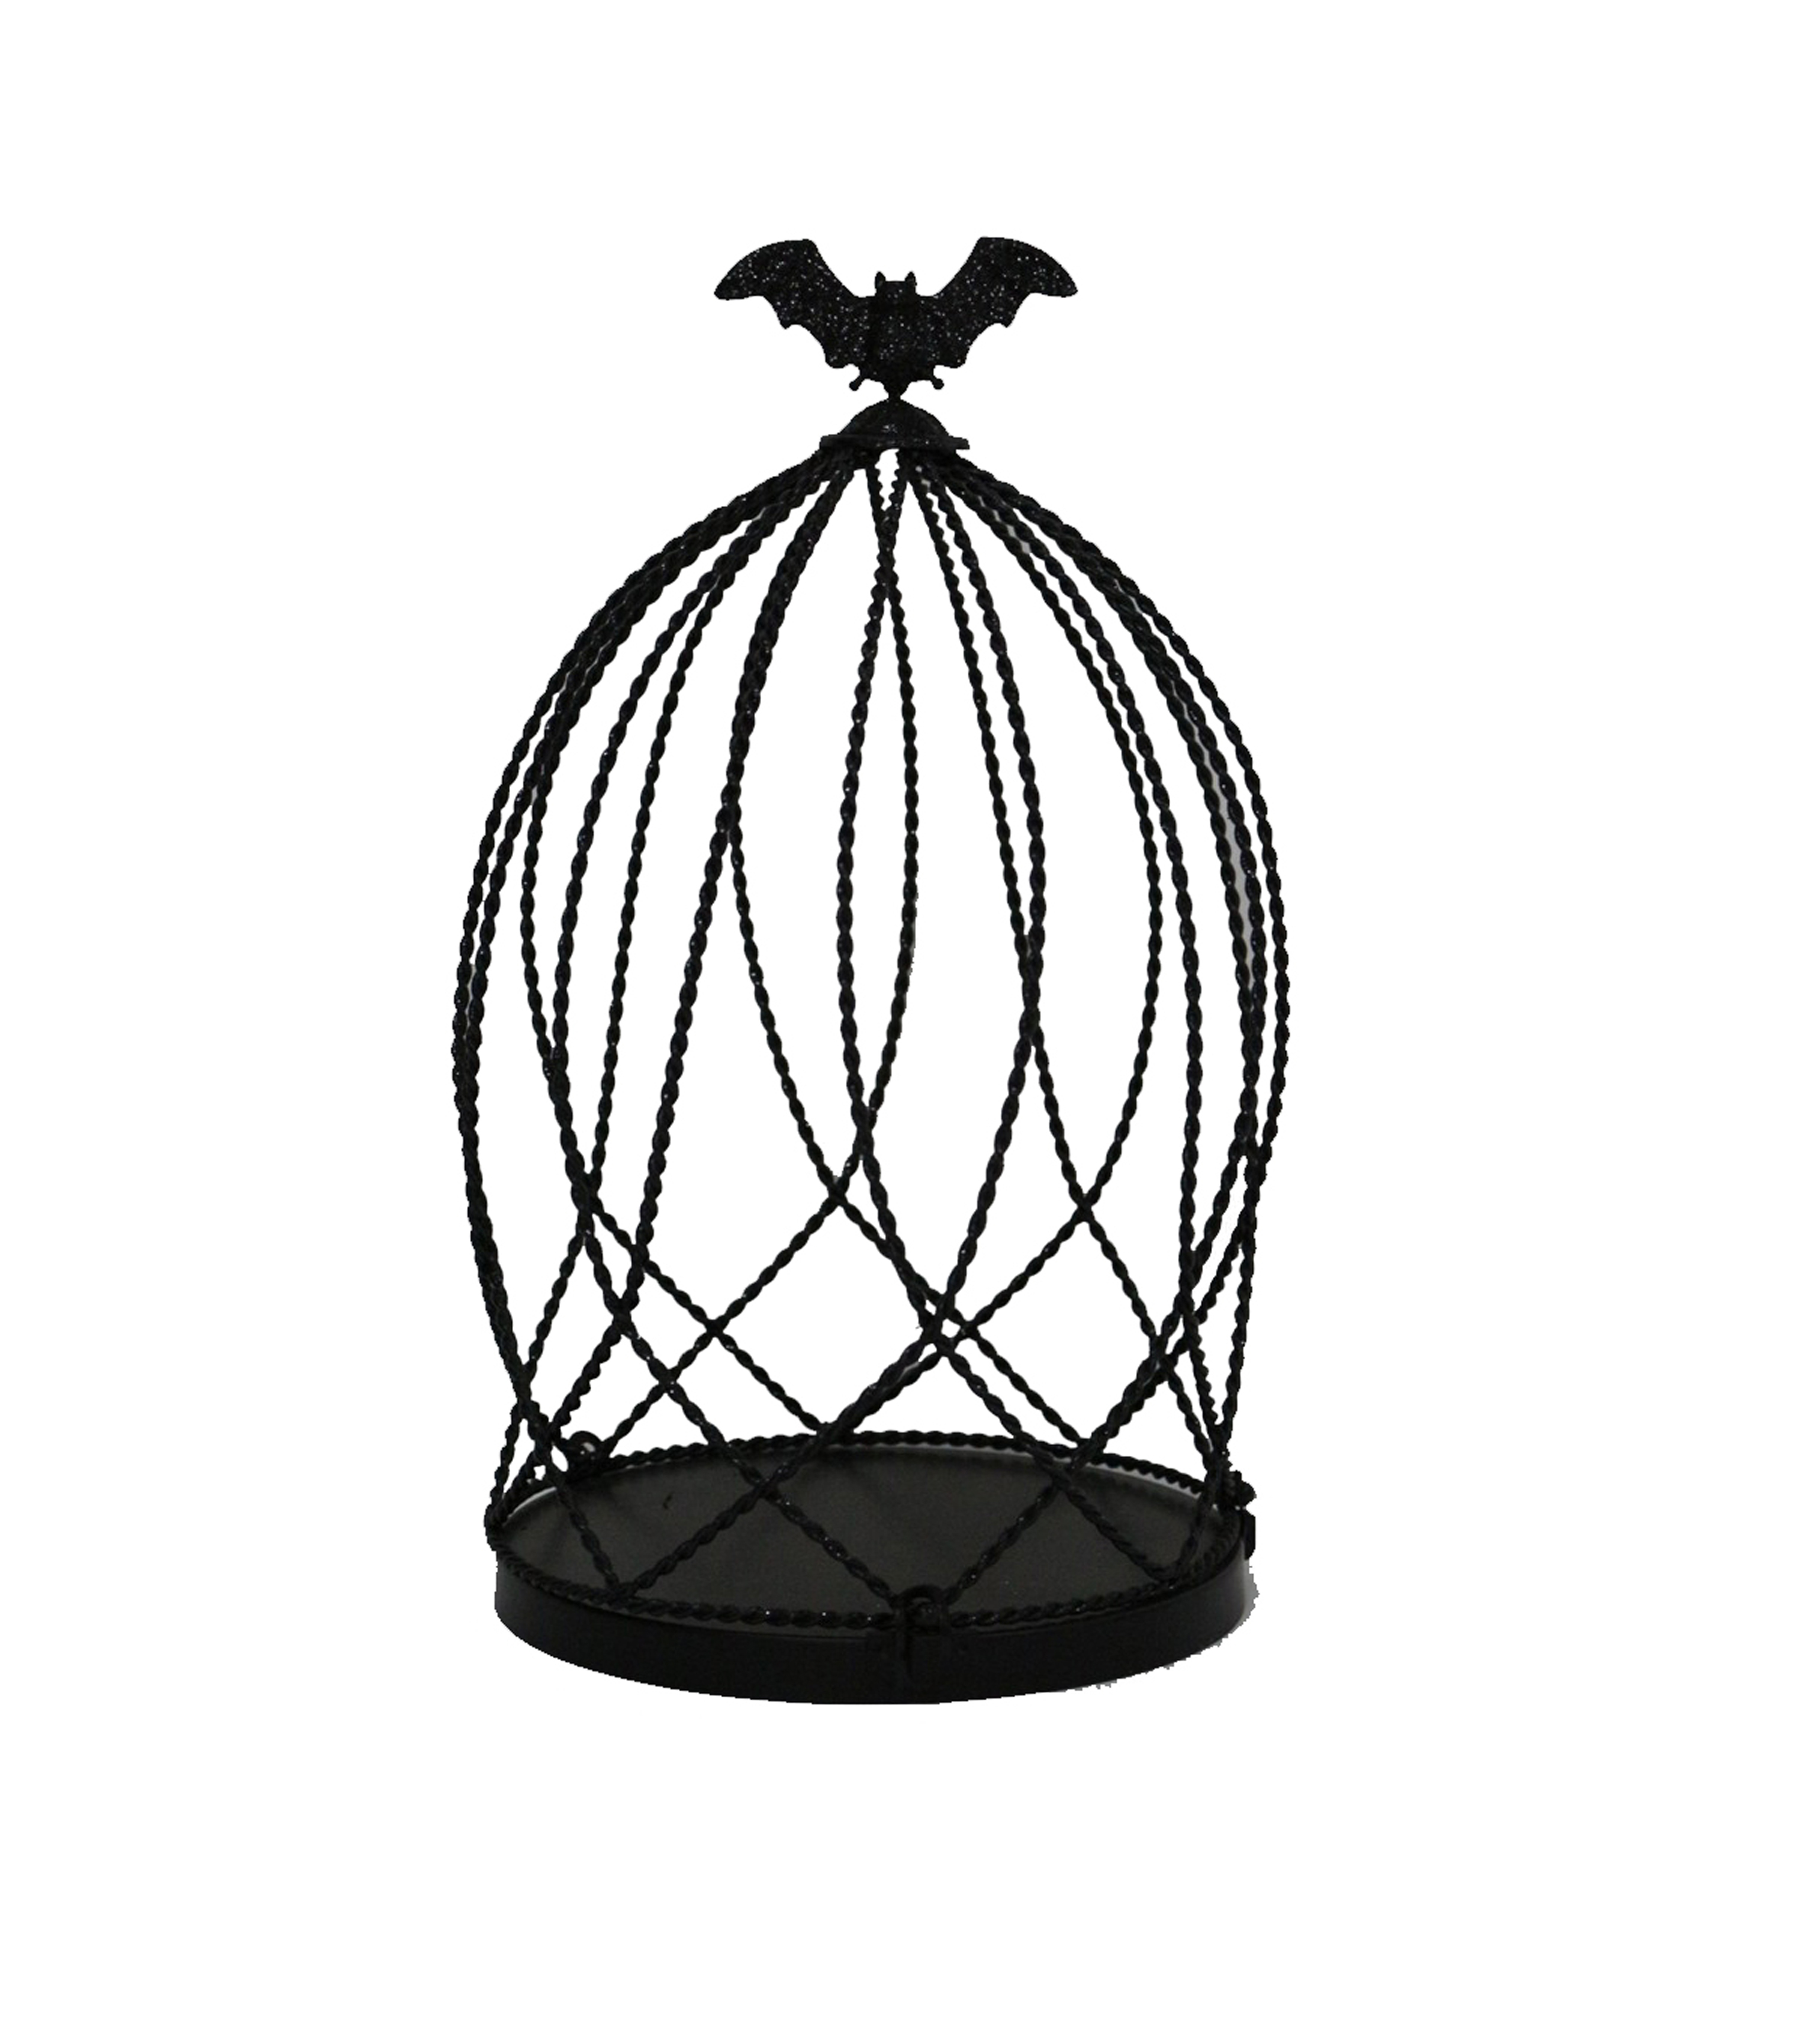 Maker\u0027s Halloween Large Cloche Birdcage-Black